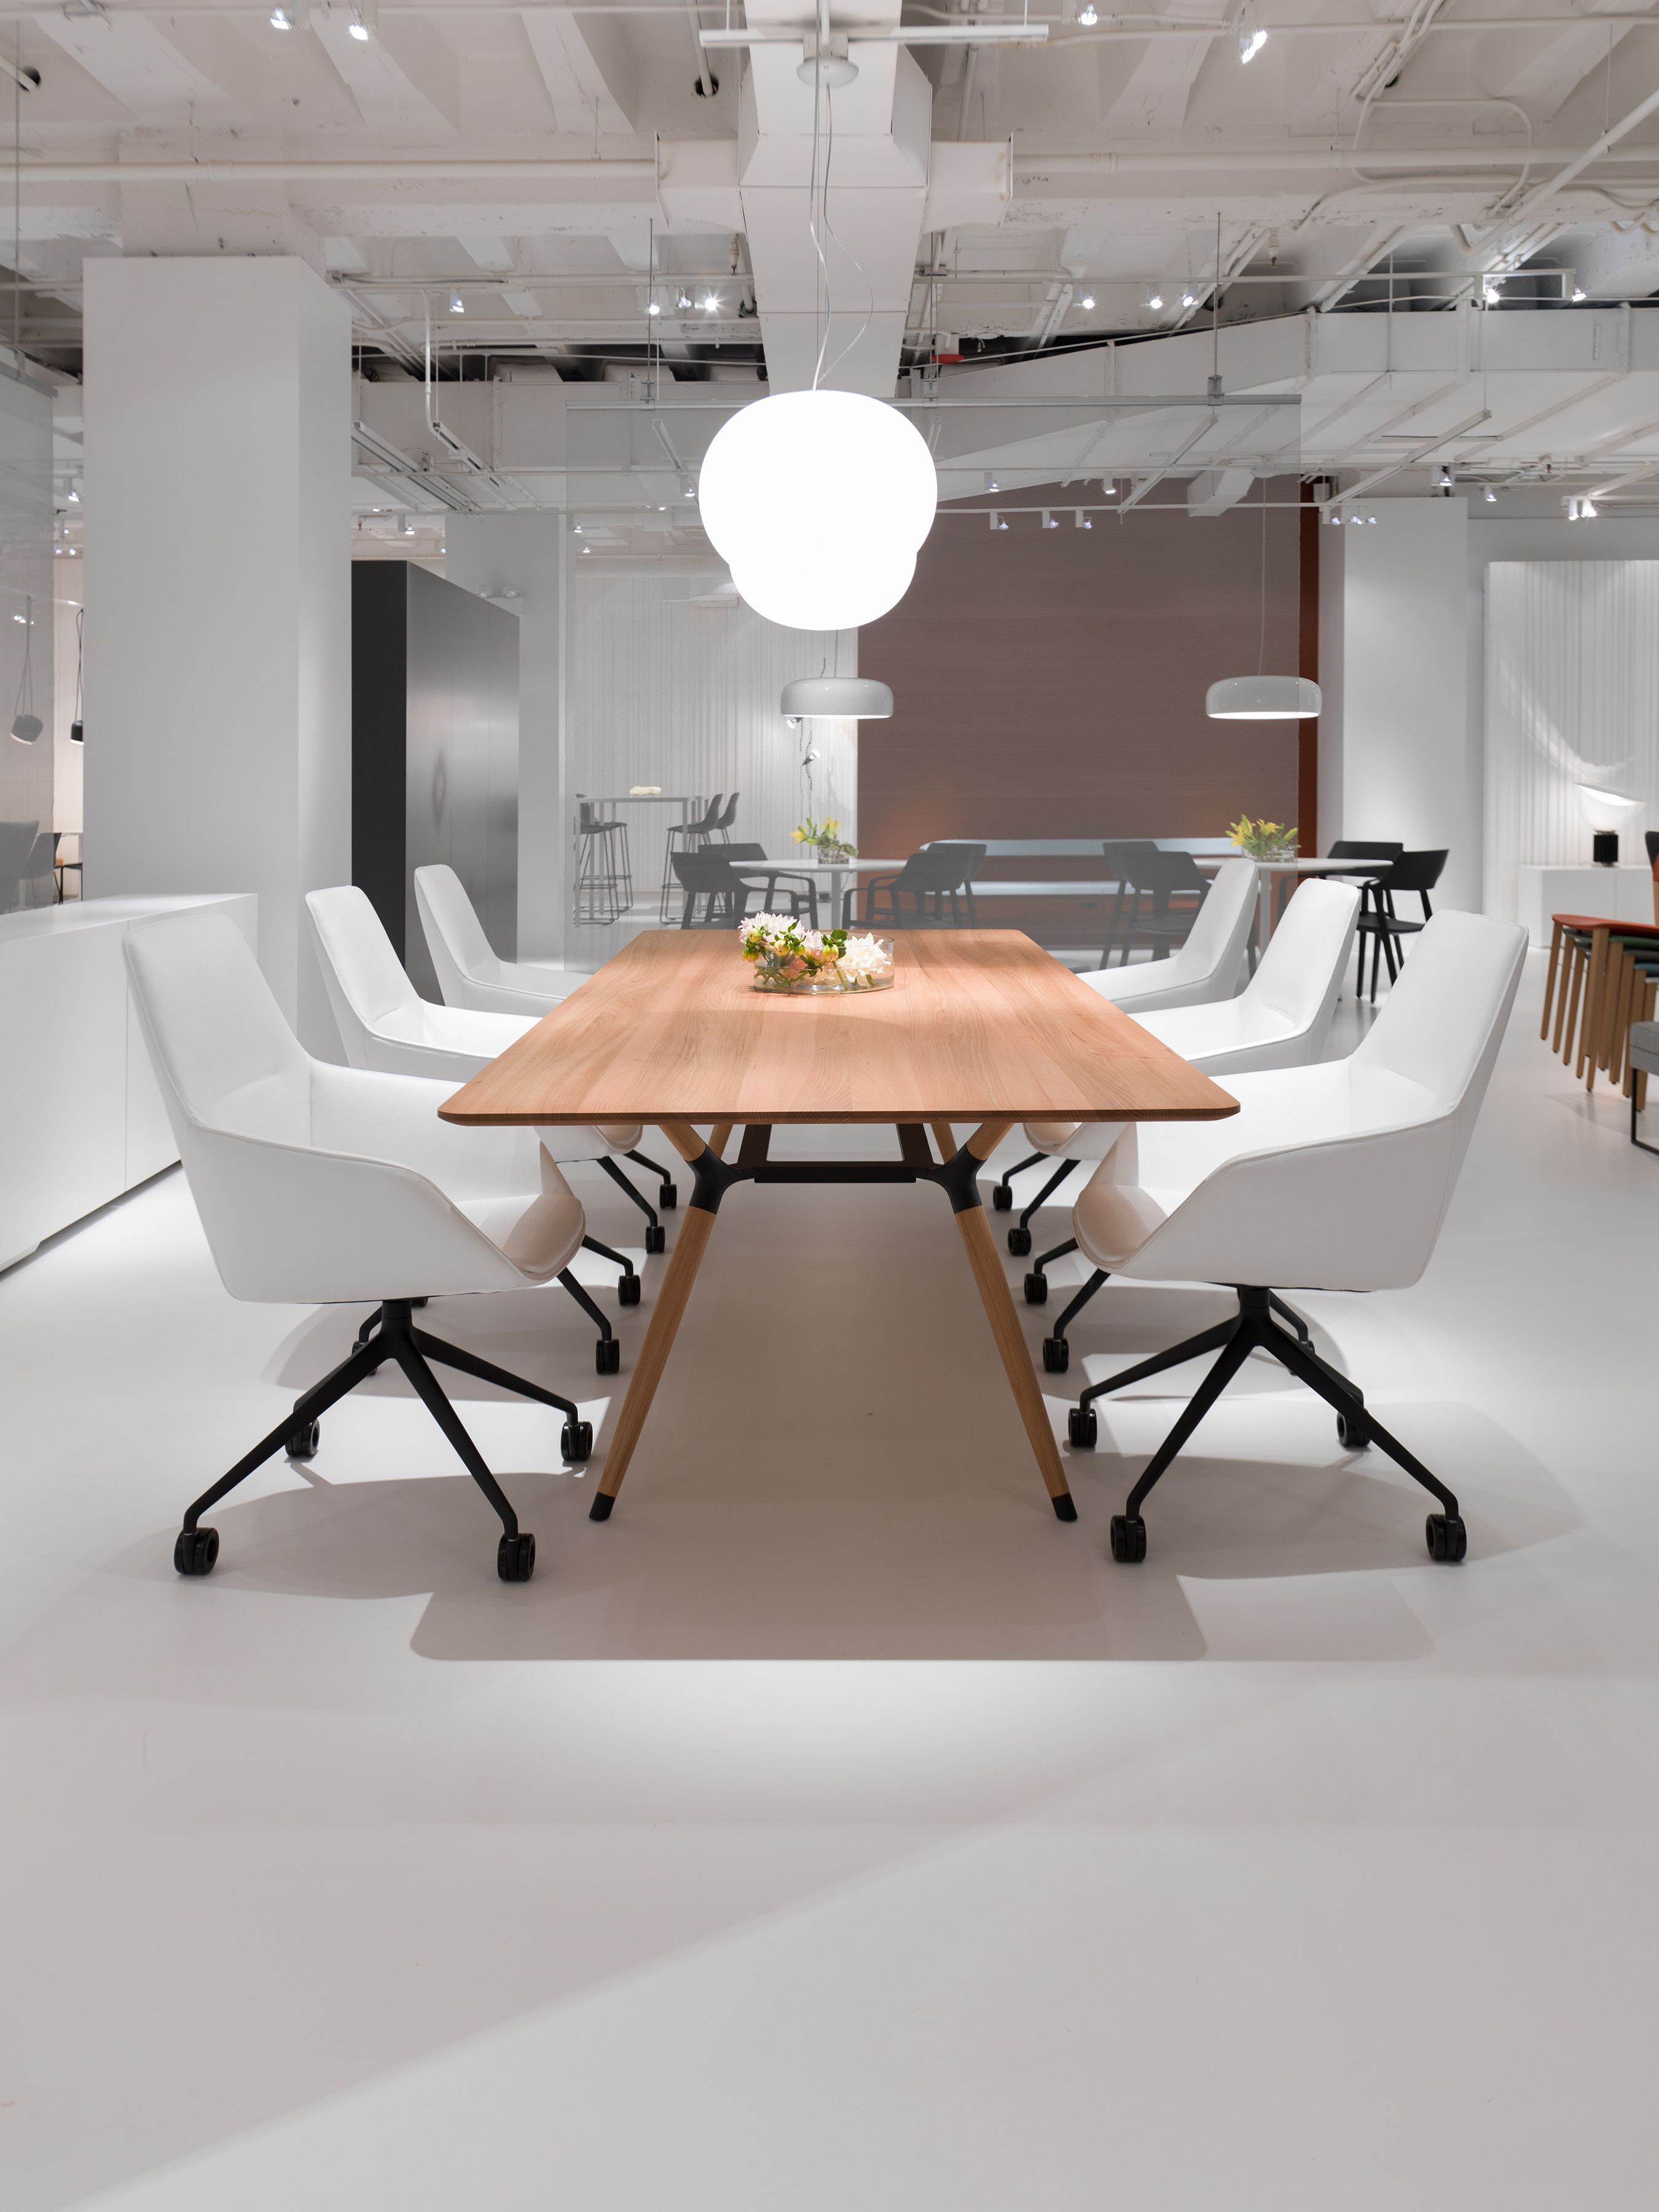 X2 Solid Wood Table shown with Sachet Chairs from Davis Furniture